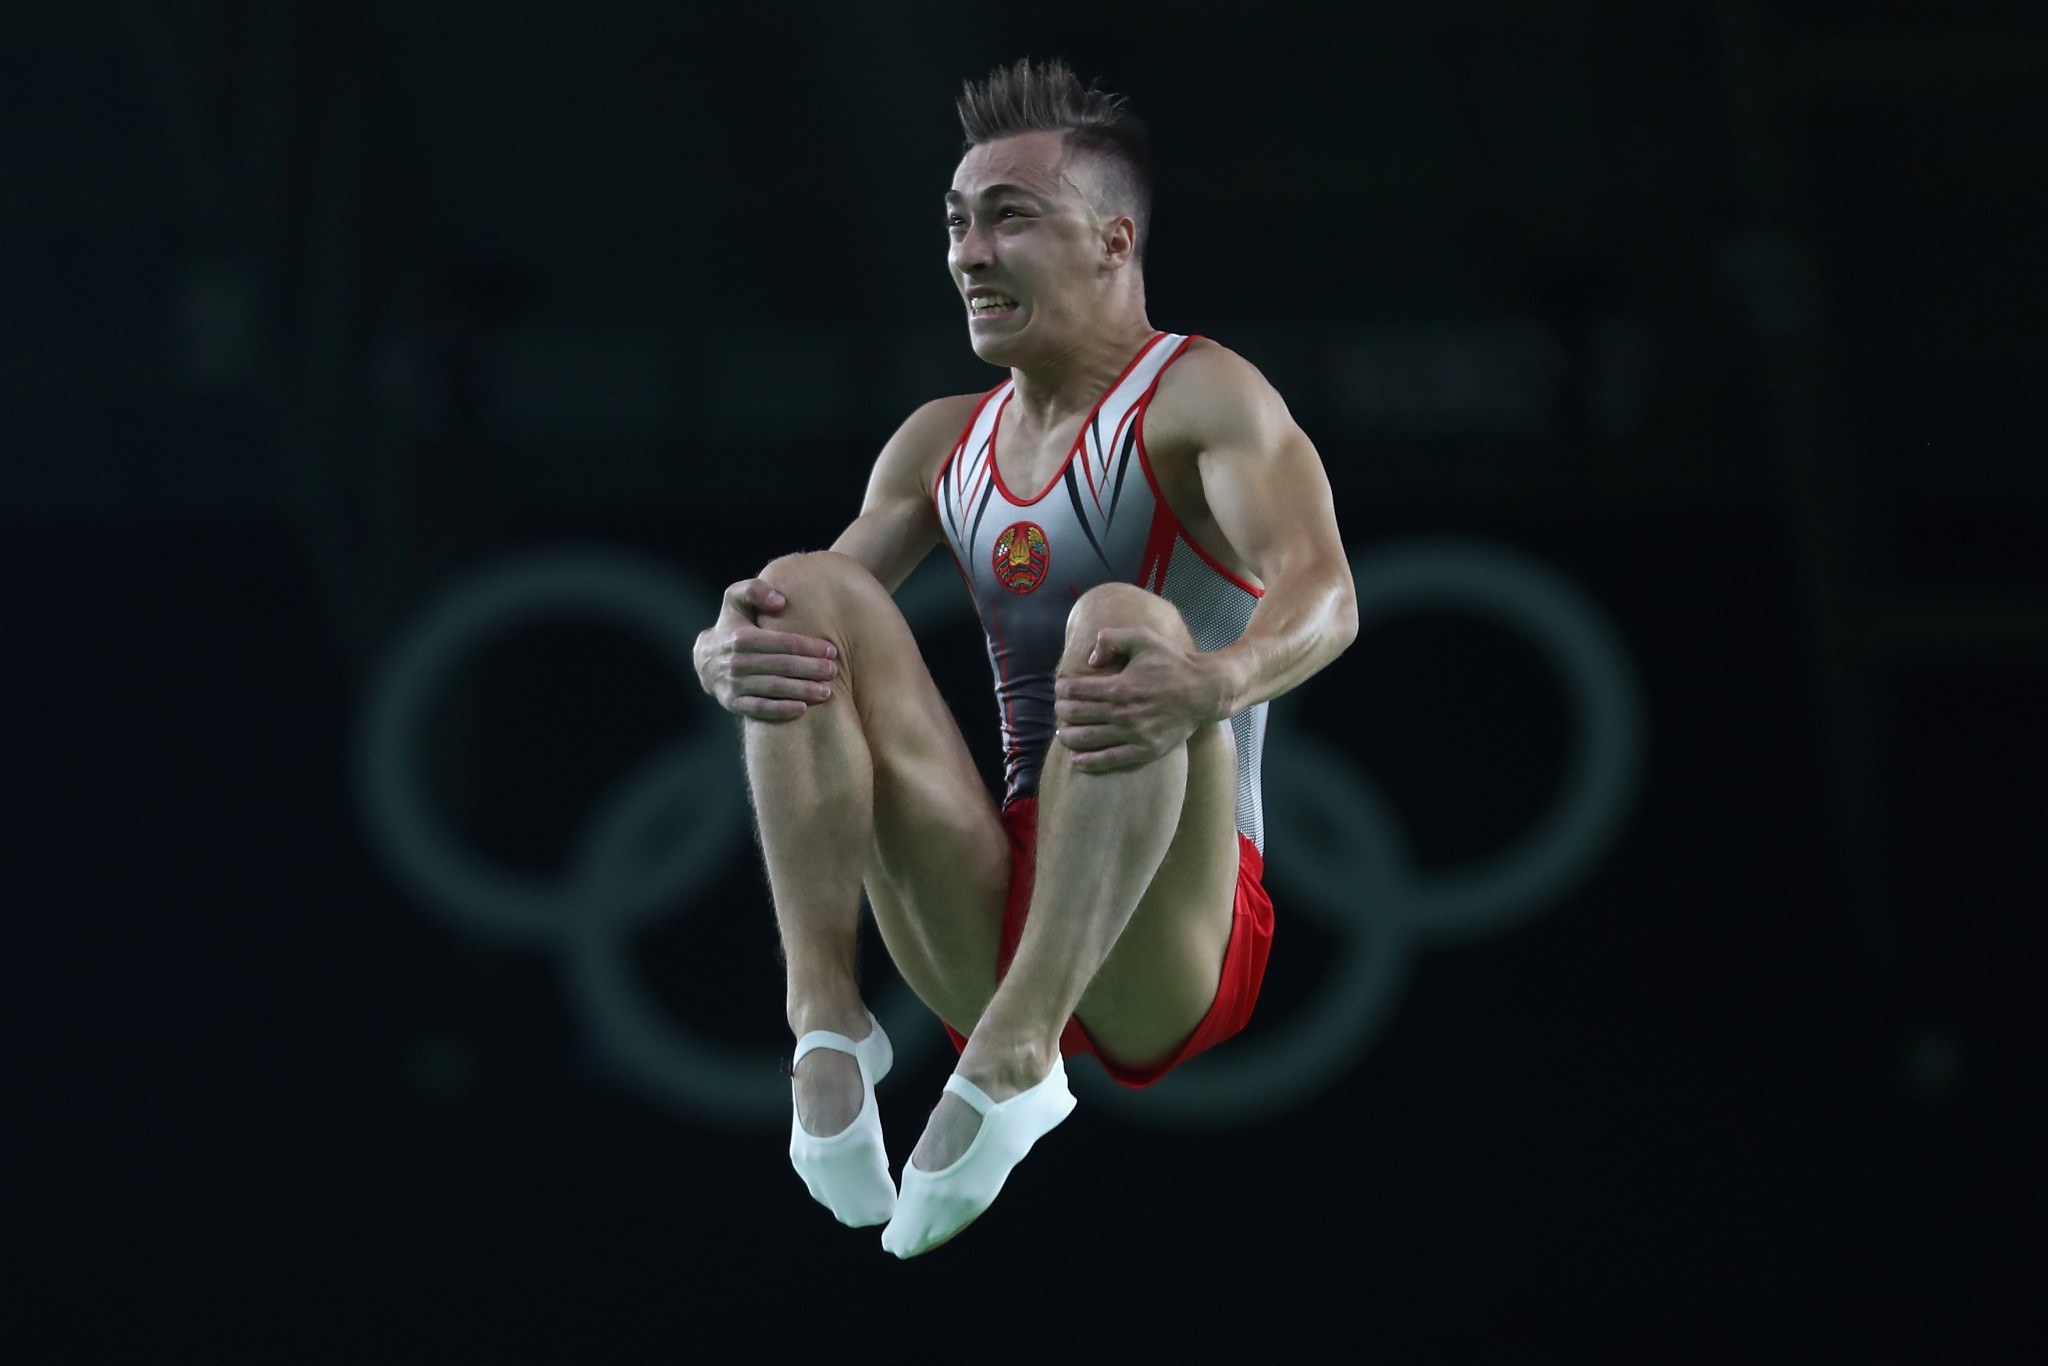 Uladzislau Hancharou won an Olympic gold medal in trampoline for Belarus at Rio 2016 ©Getty Images